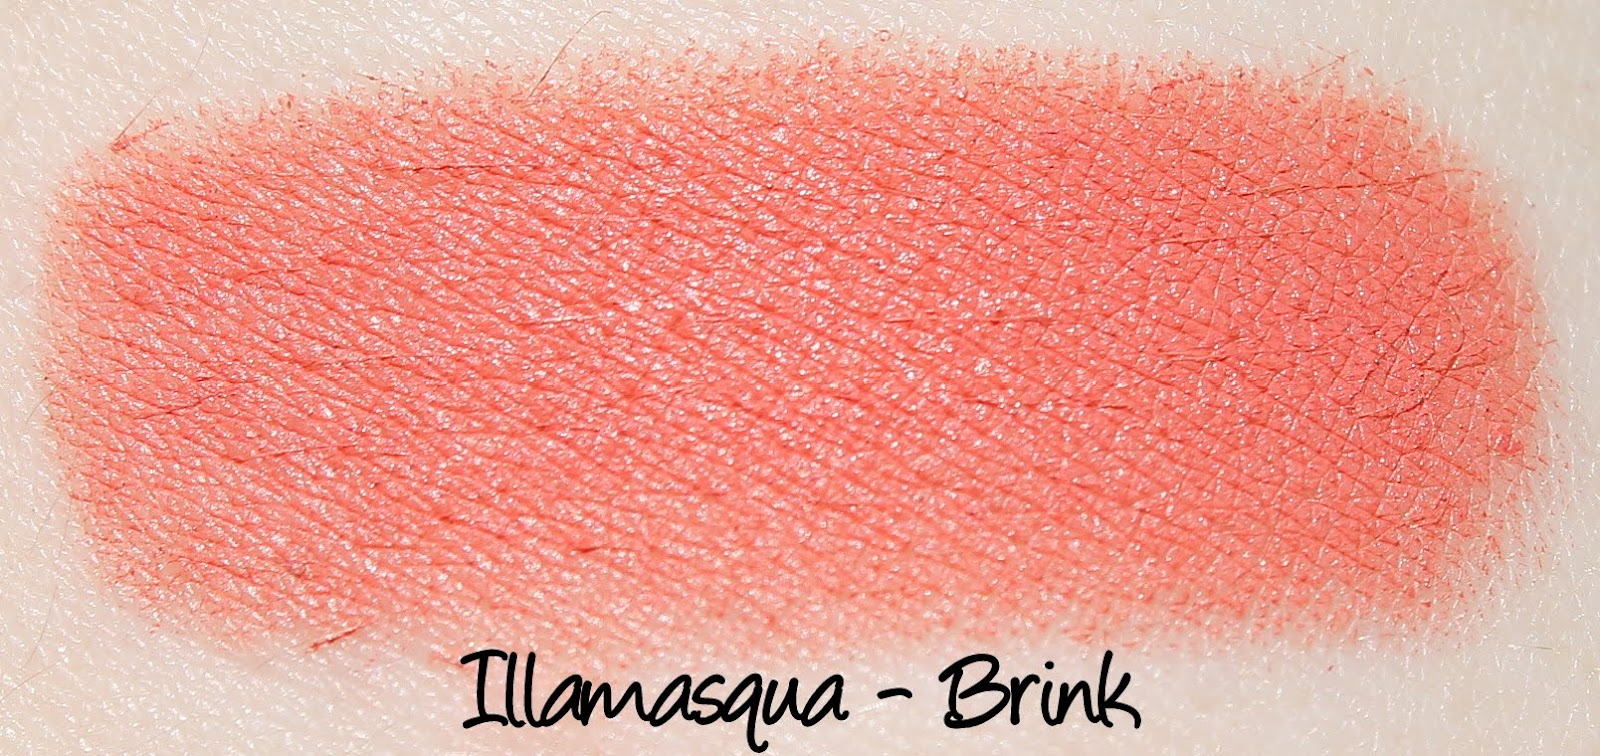 Illamasqua Brink Lipstick Swatches & Review